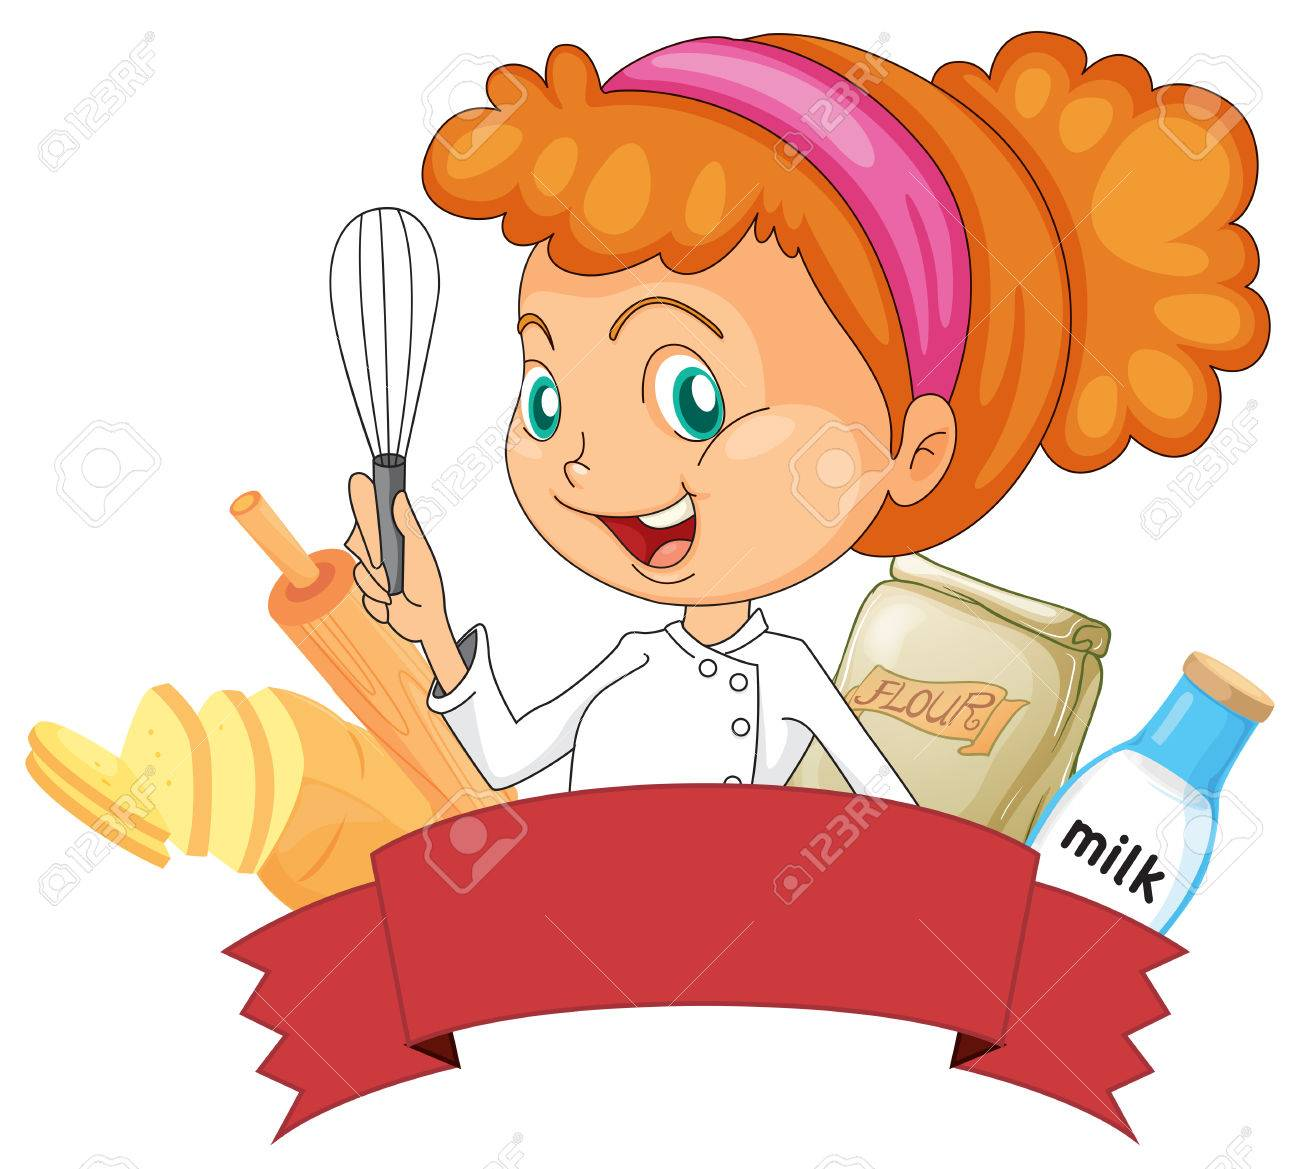 1300x1169 Badge Of Bakery With A Female Baker Holding A Whisk Royalty Free